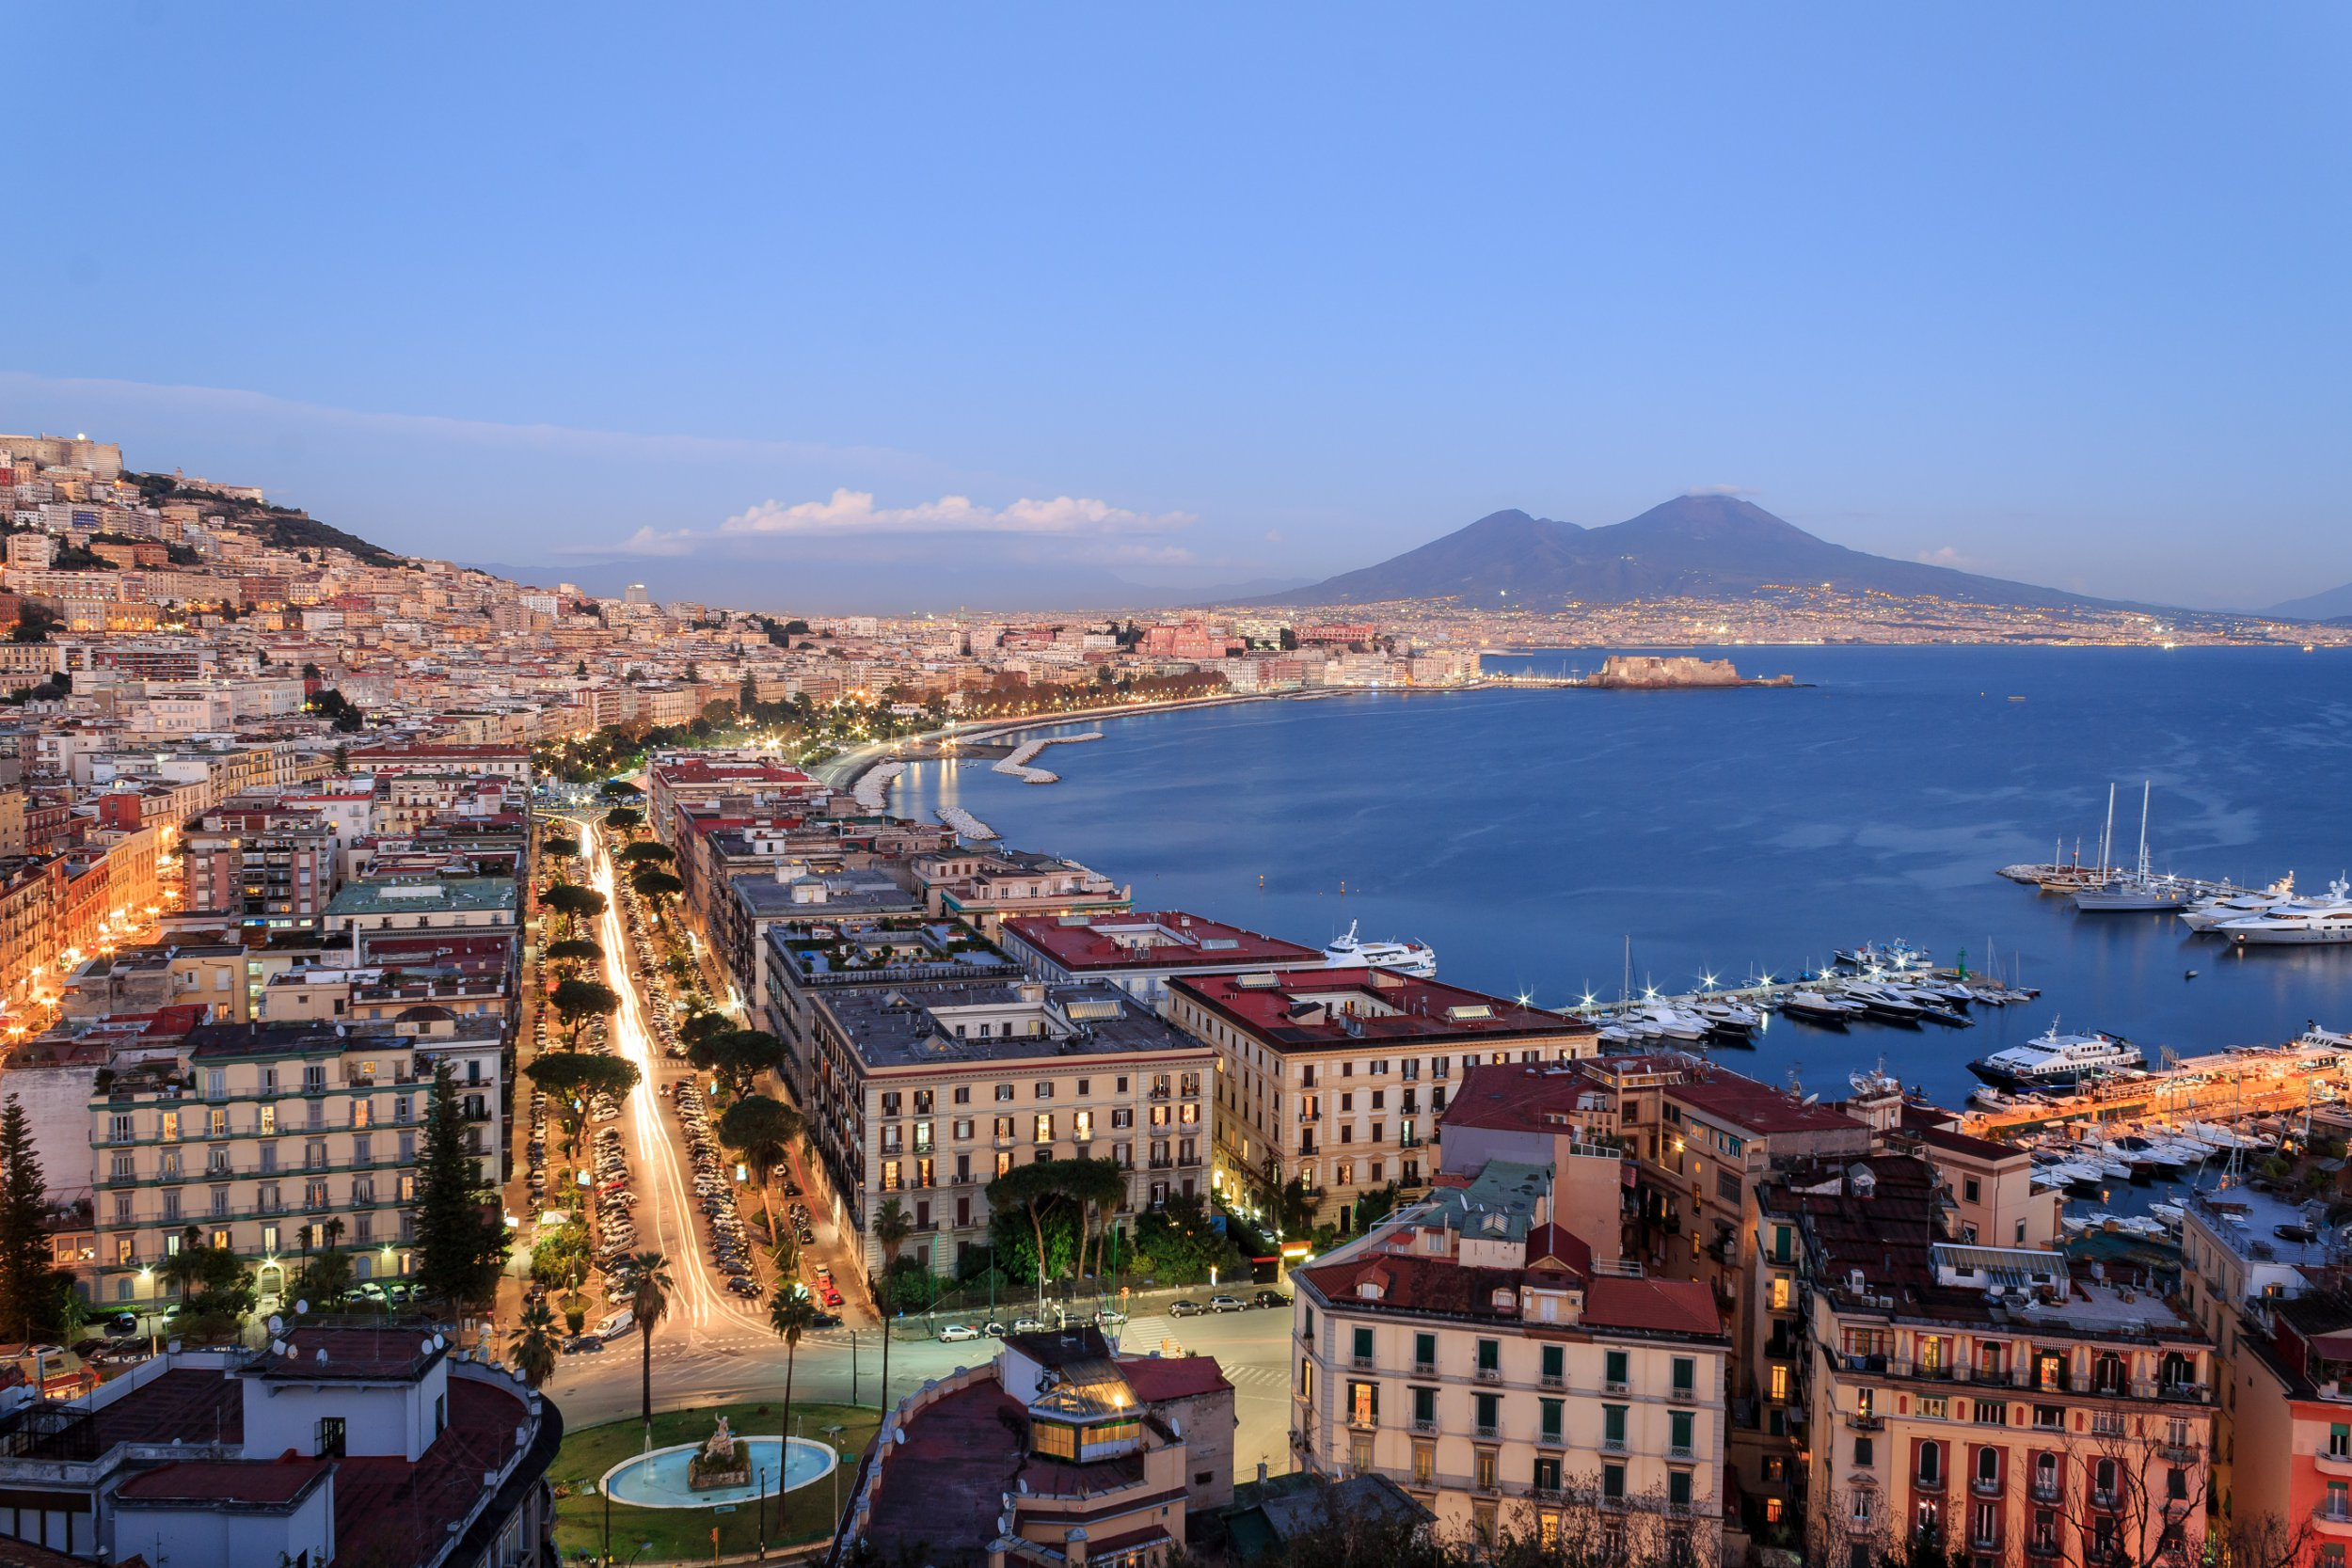 Italy, the bay of Naples in the evening, with Mount Vesuvius Volcano in background and city lights on.